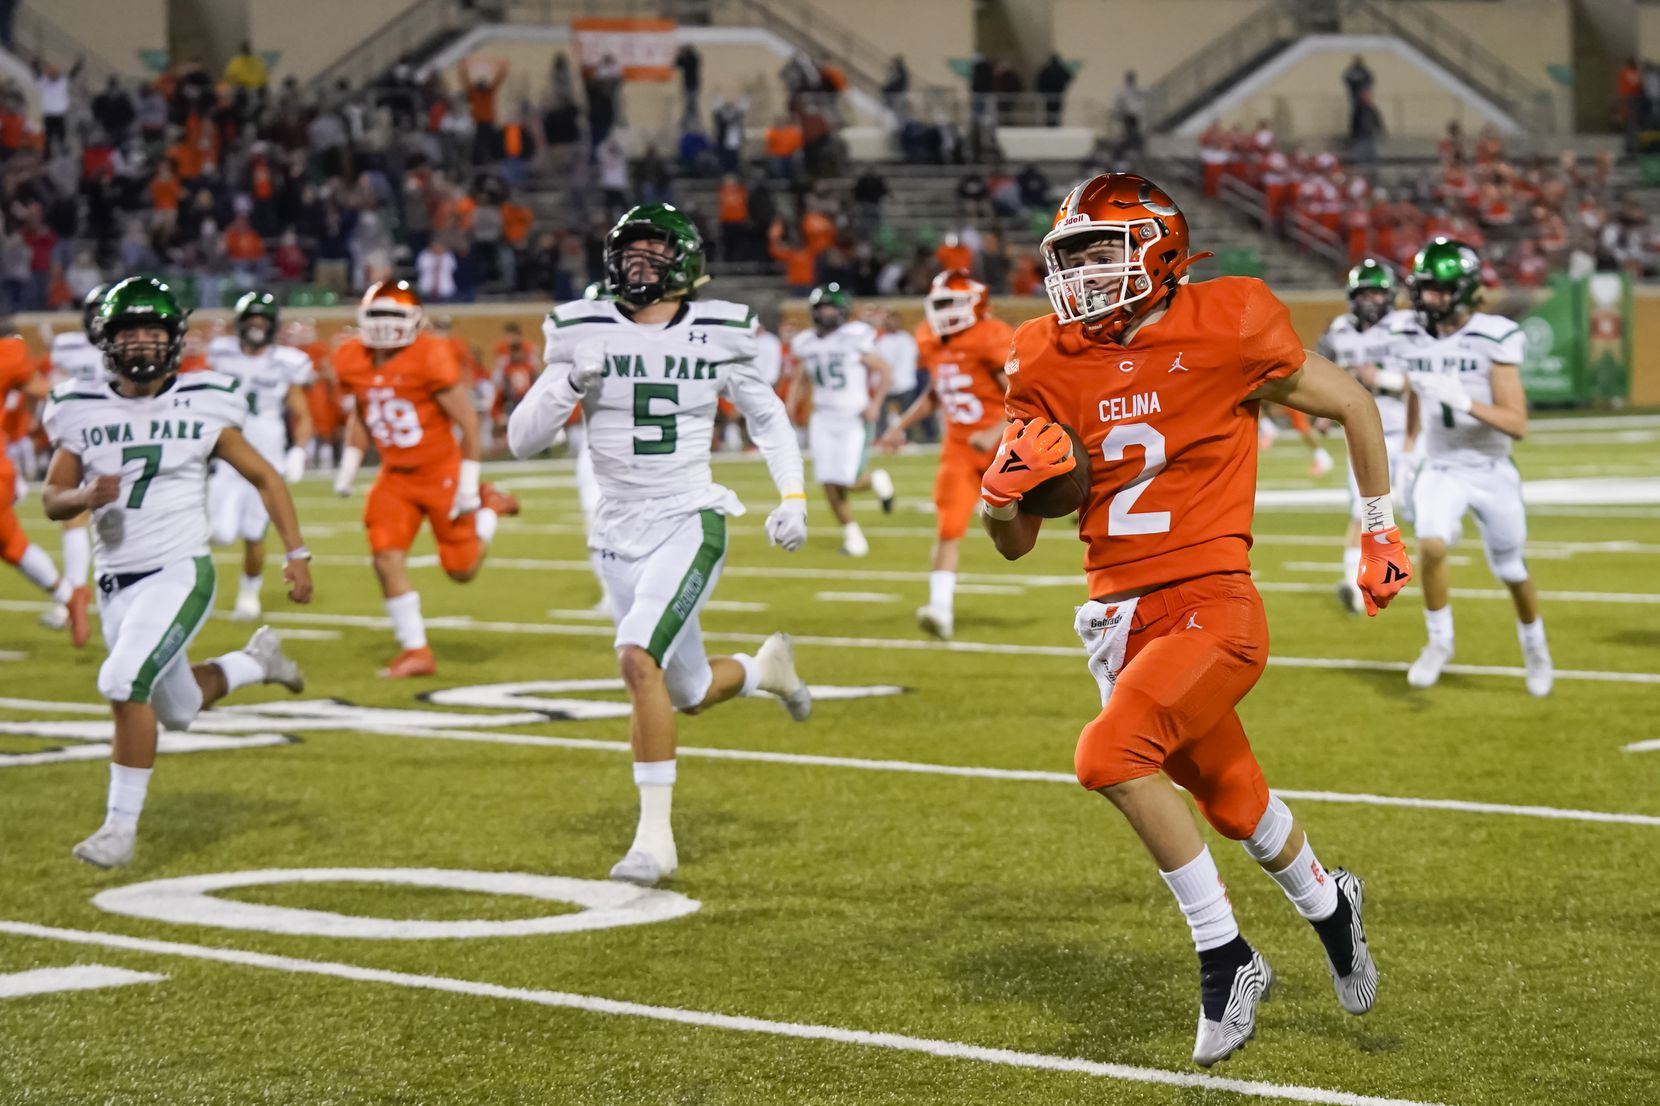 Celina wide receiver Collin Urich (2) returns the opening kickoff 91 yards for a touchdown past Iowa Park's Connor Anderson (5) during the first quarter of a Class 4A Division II Region I semifinal playoff high school football game at Apogee Stadium on Friday, Nov. 27, 2020, in Denton. (Smiley N. Pool/The Dallas Morning News)